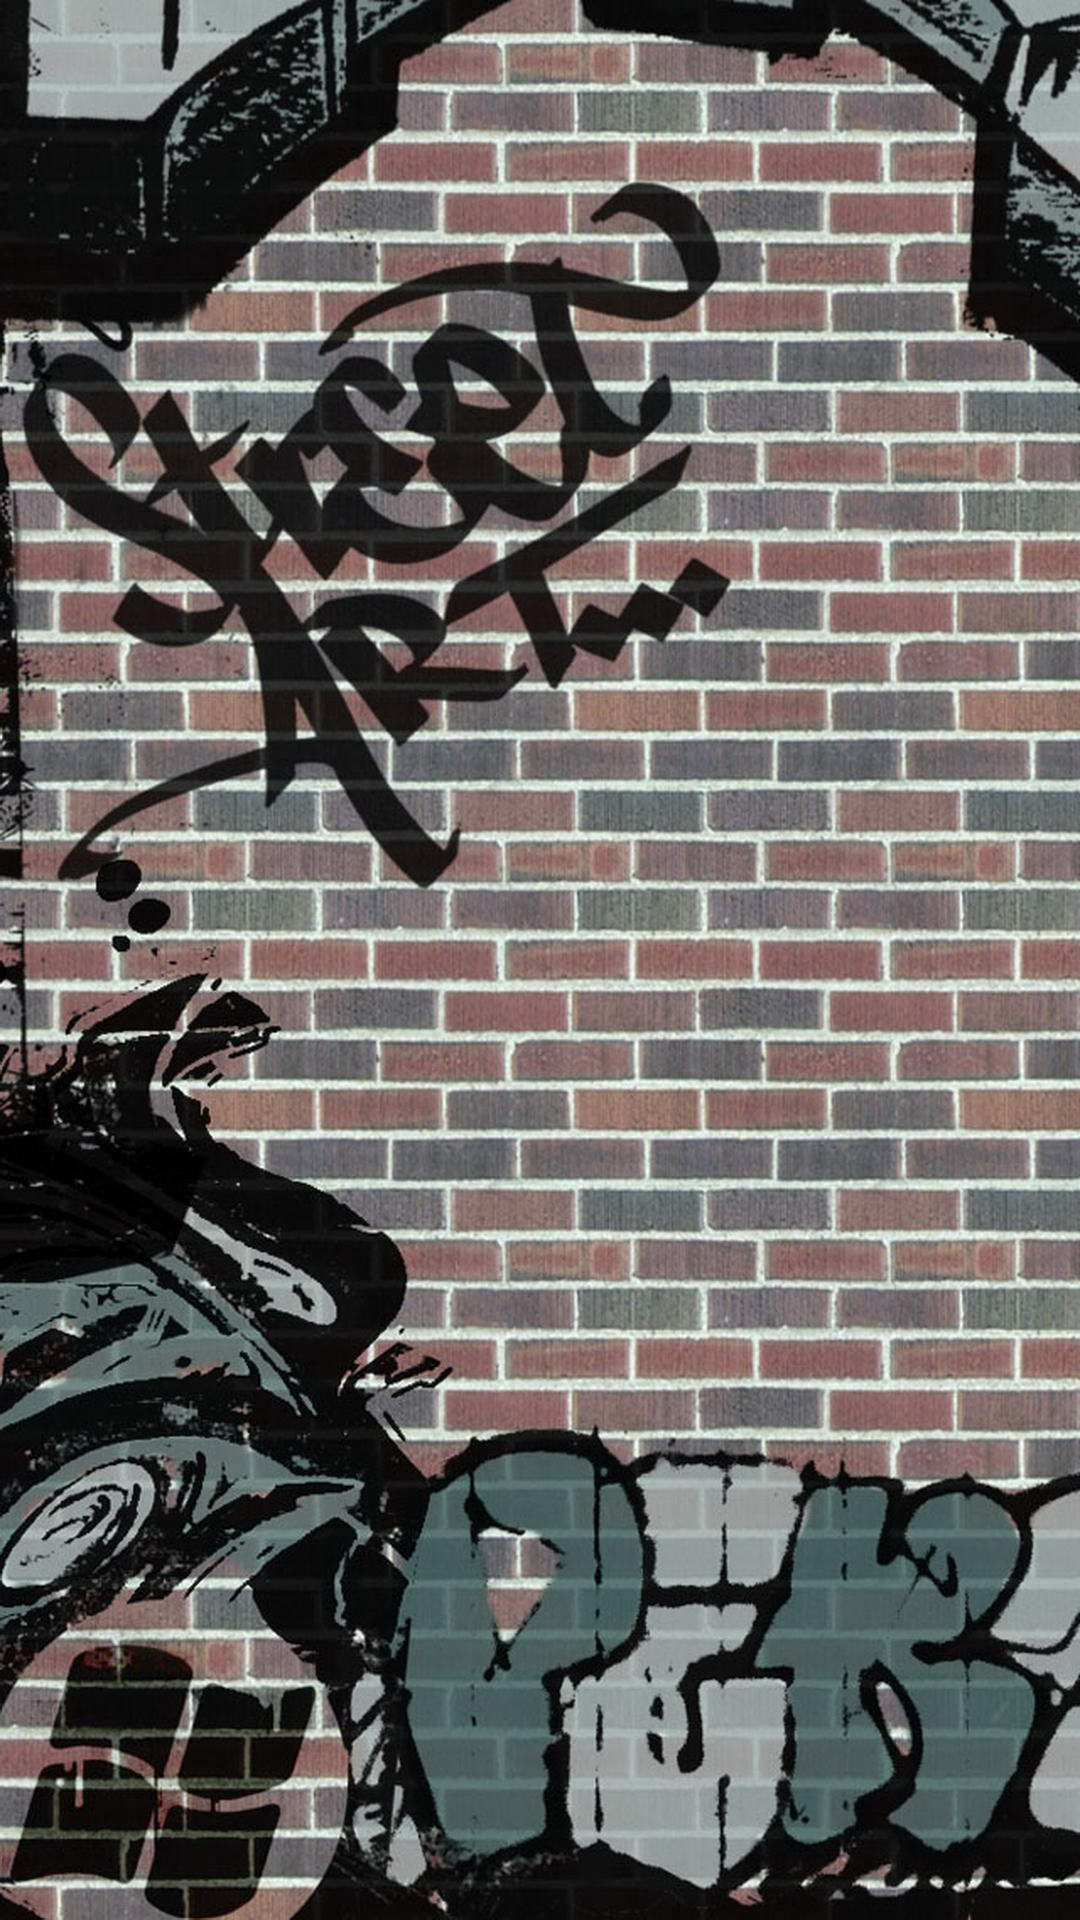 Graffiti Wallpapers Iphone Wallpaper